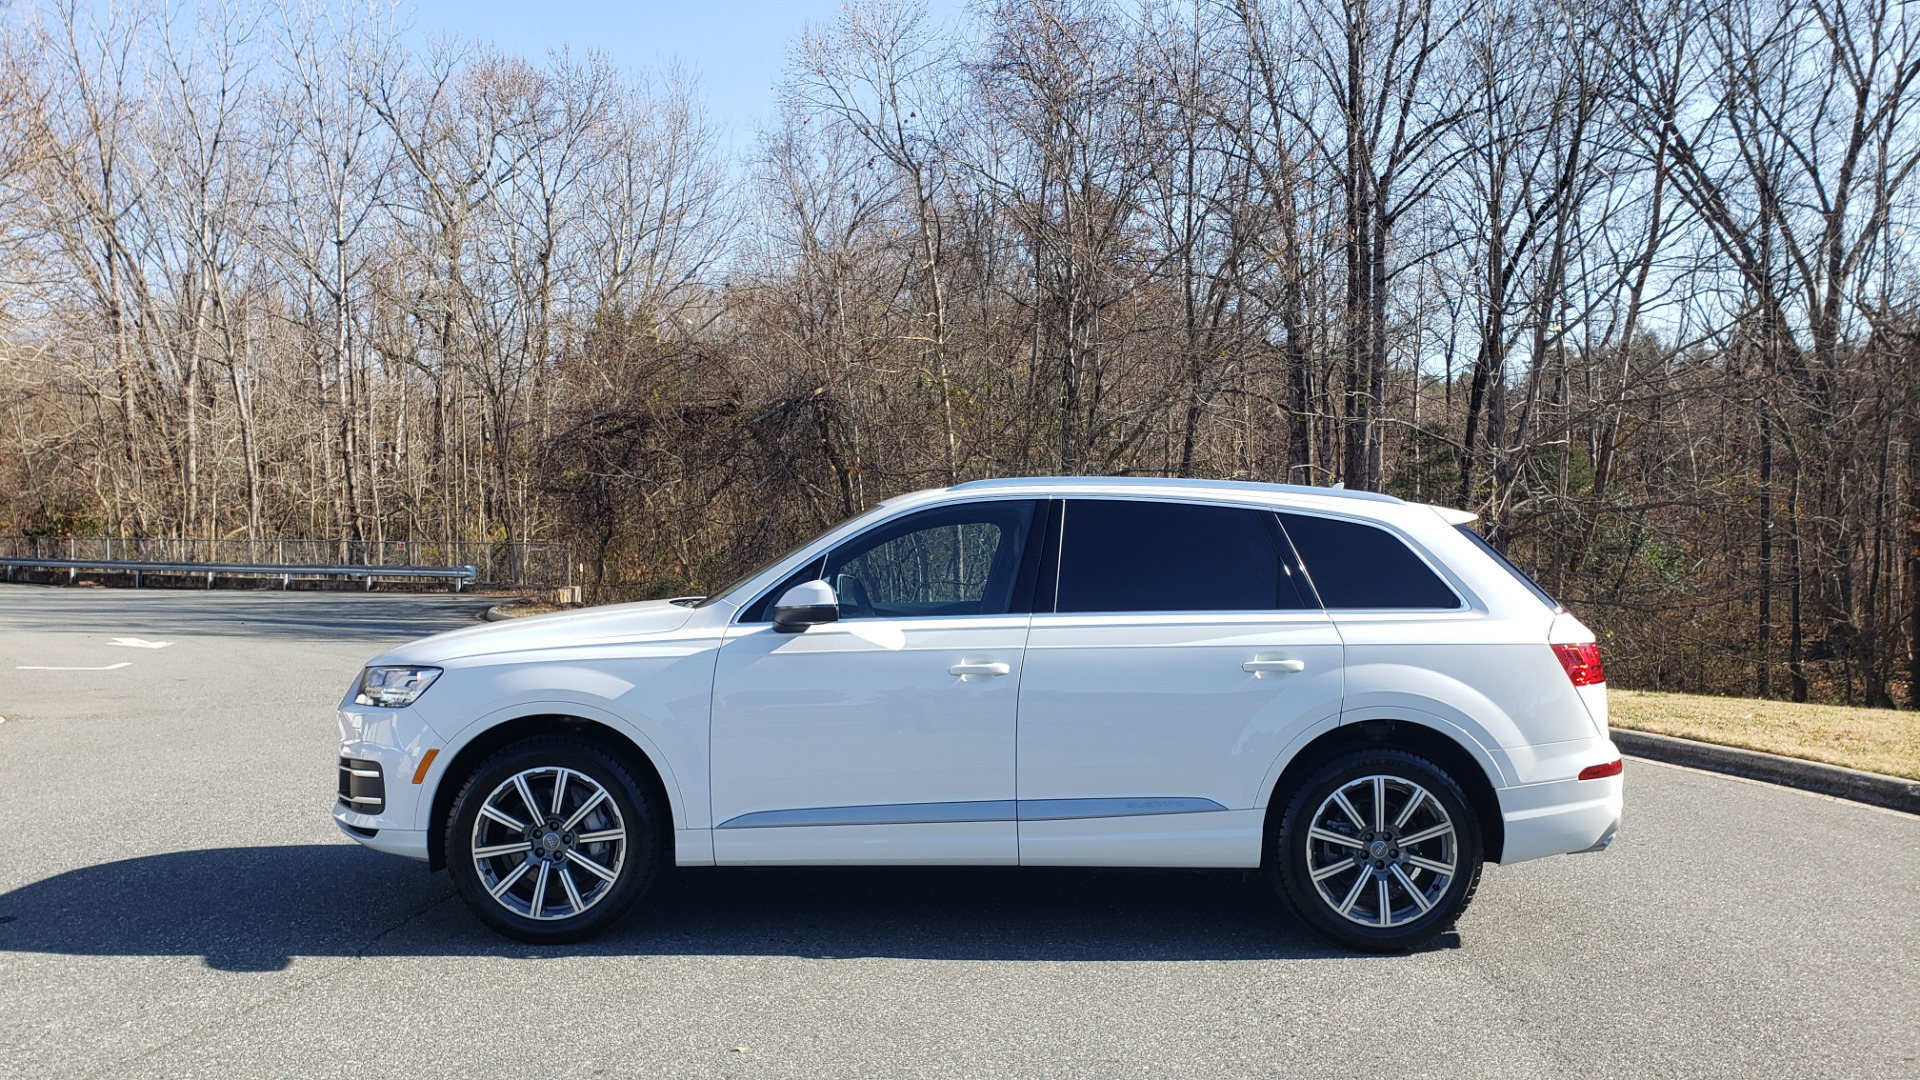 Used 2017 Audi Q7 PRESTIGE 3.0T / NAV / CLD WTHR / SUNROOF / REARVIEW for sale Sold at Formula Imports in Charlotte NC 28227 2